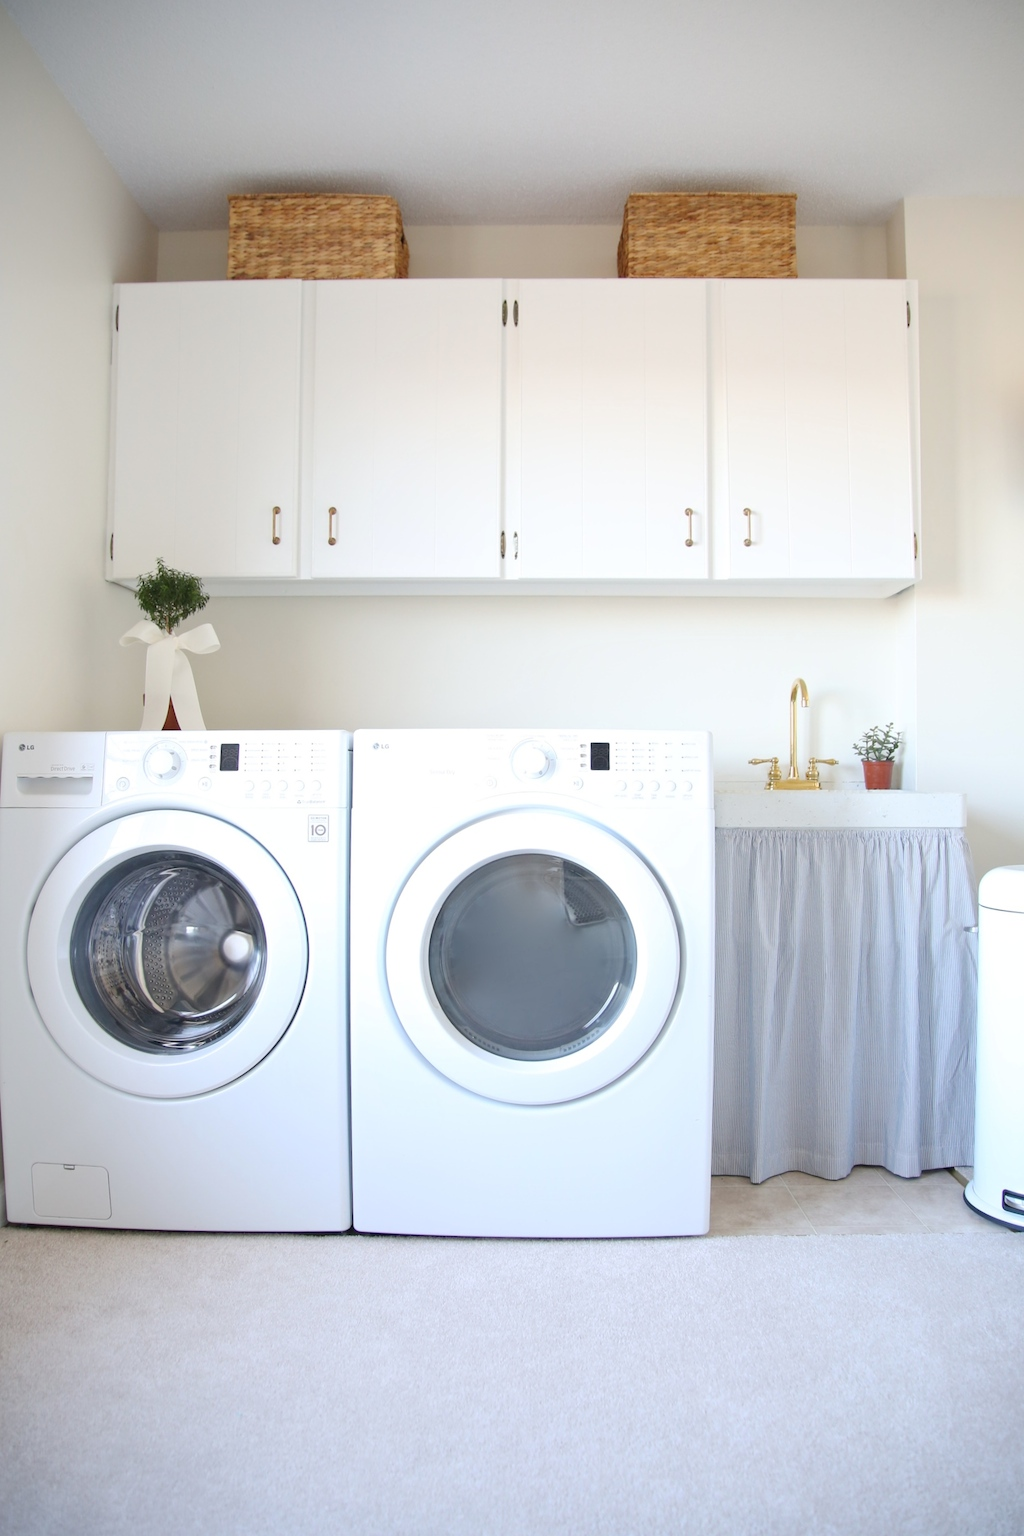 25 small laundry room ideas - Laundry room design ideas ...